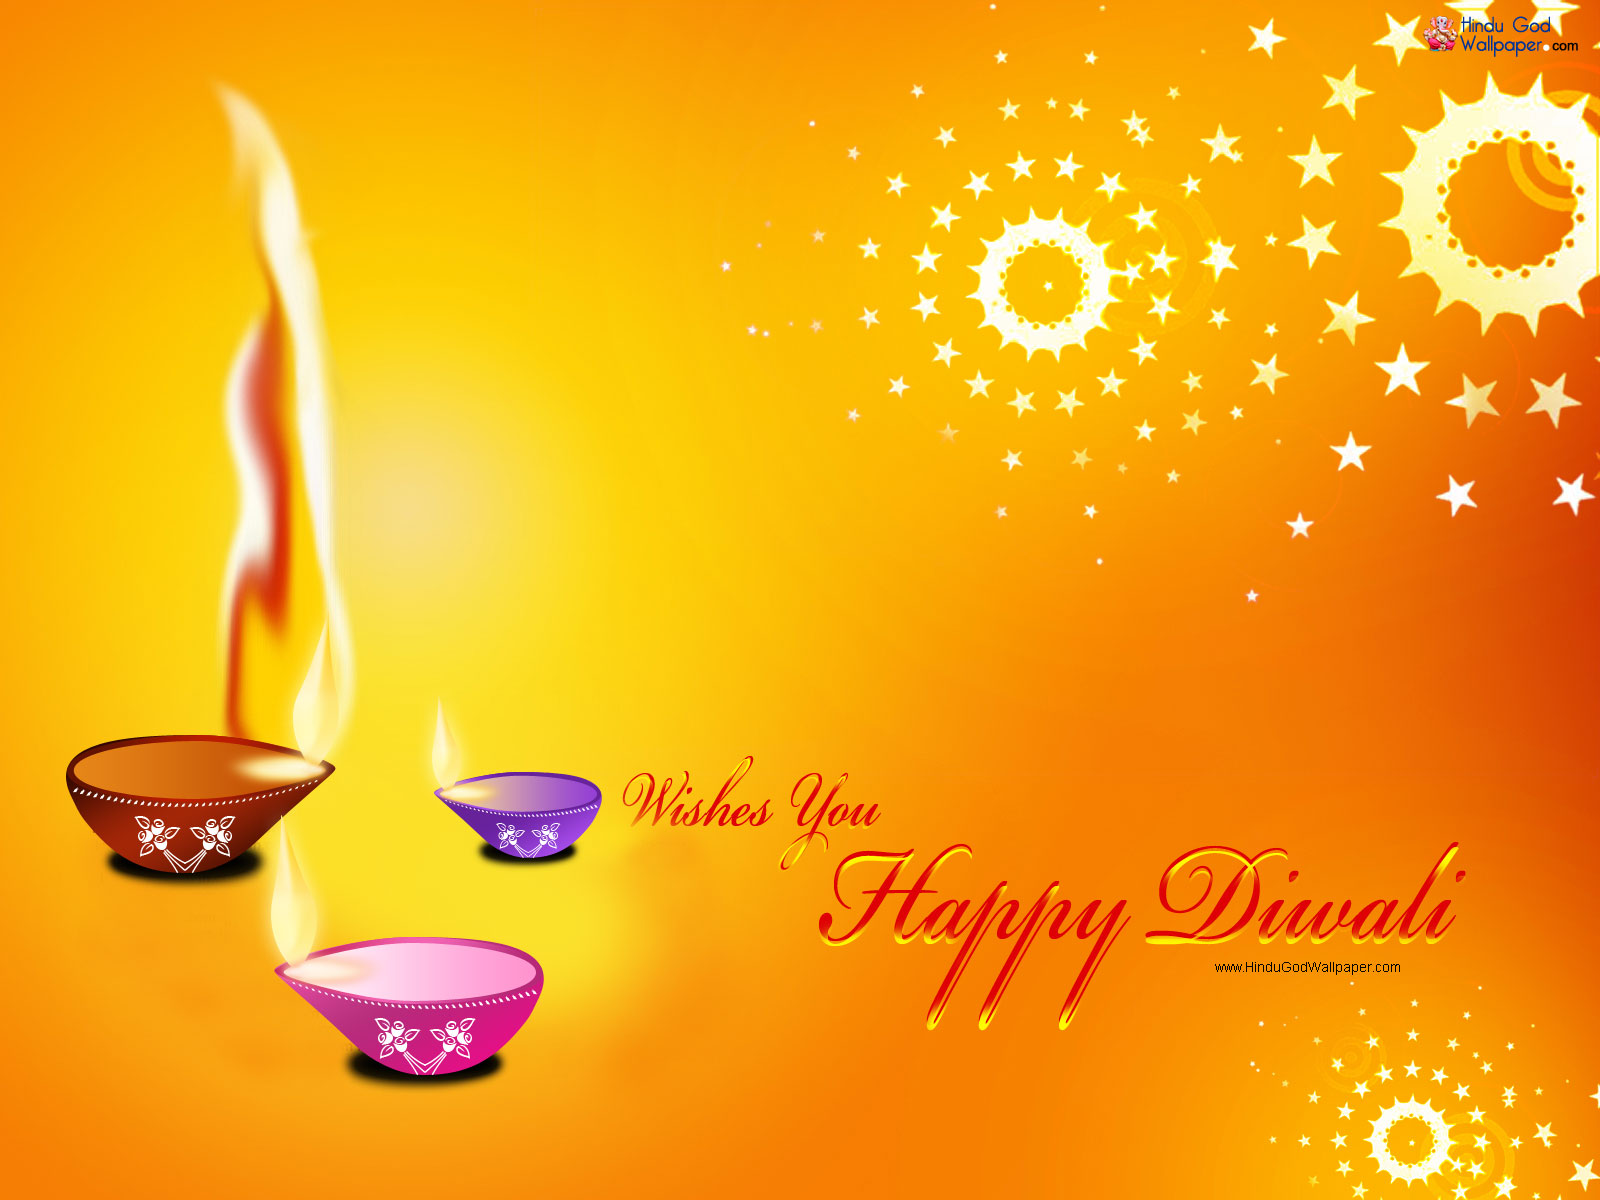 Happy Diwali 2016 Hd Wallpaper Funny Diwali Wallpapers Daily Roabox